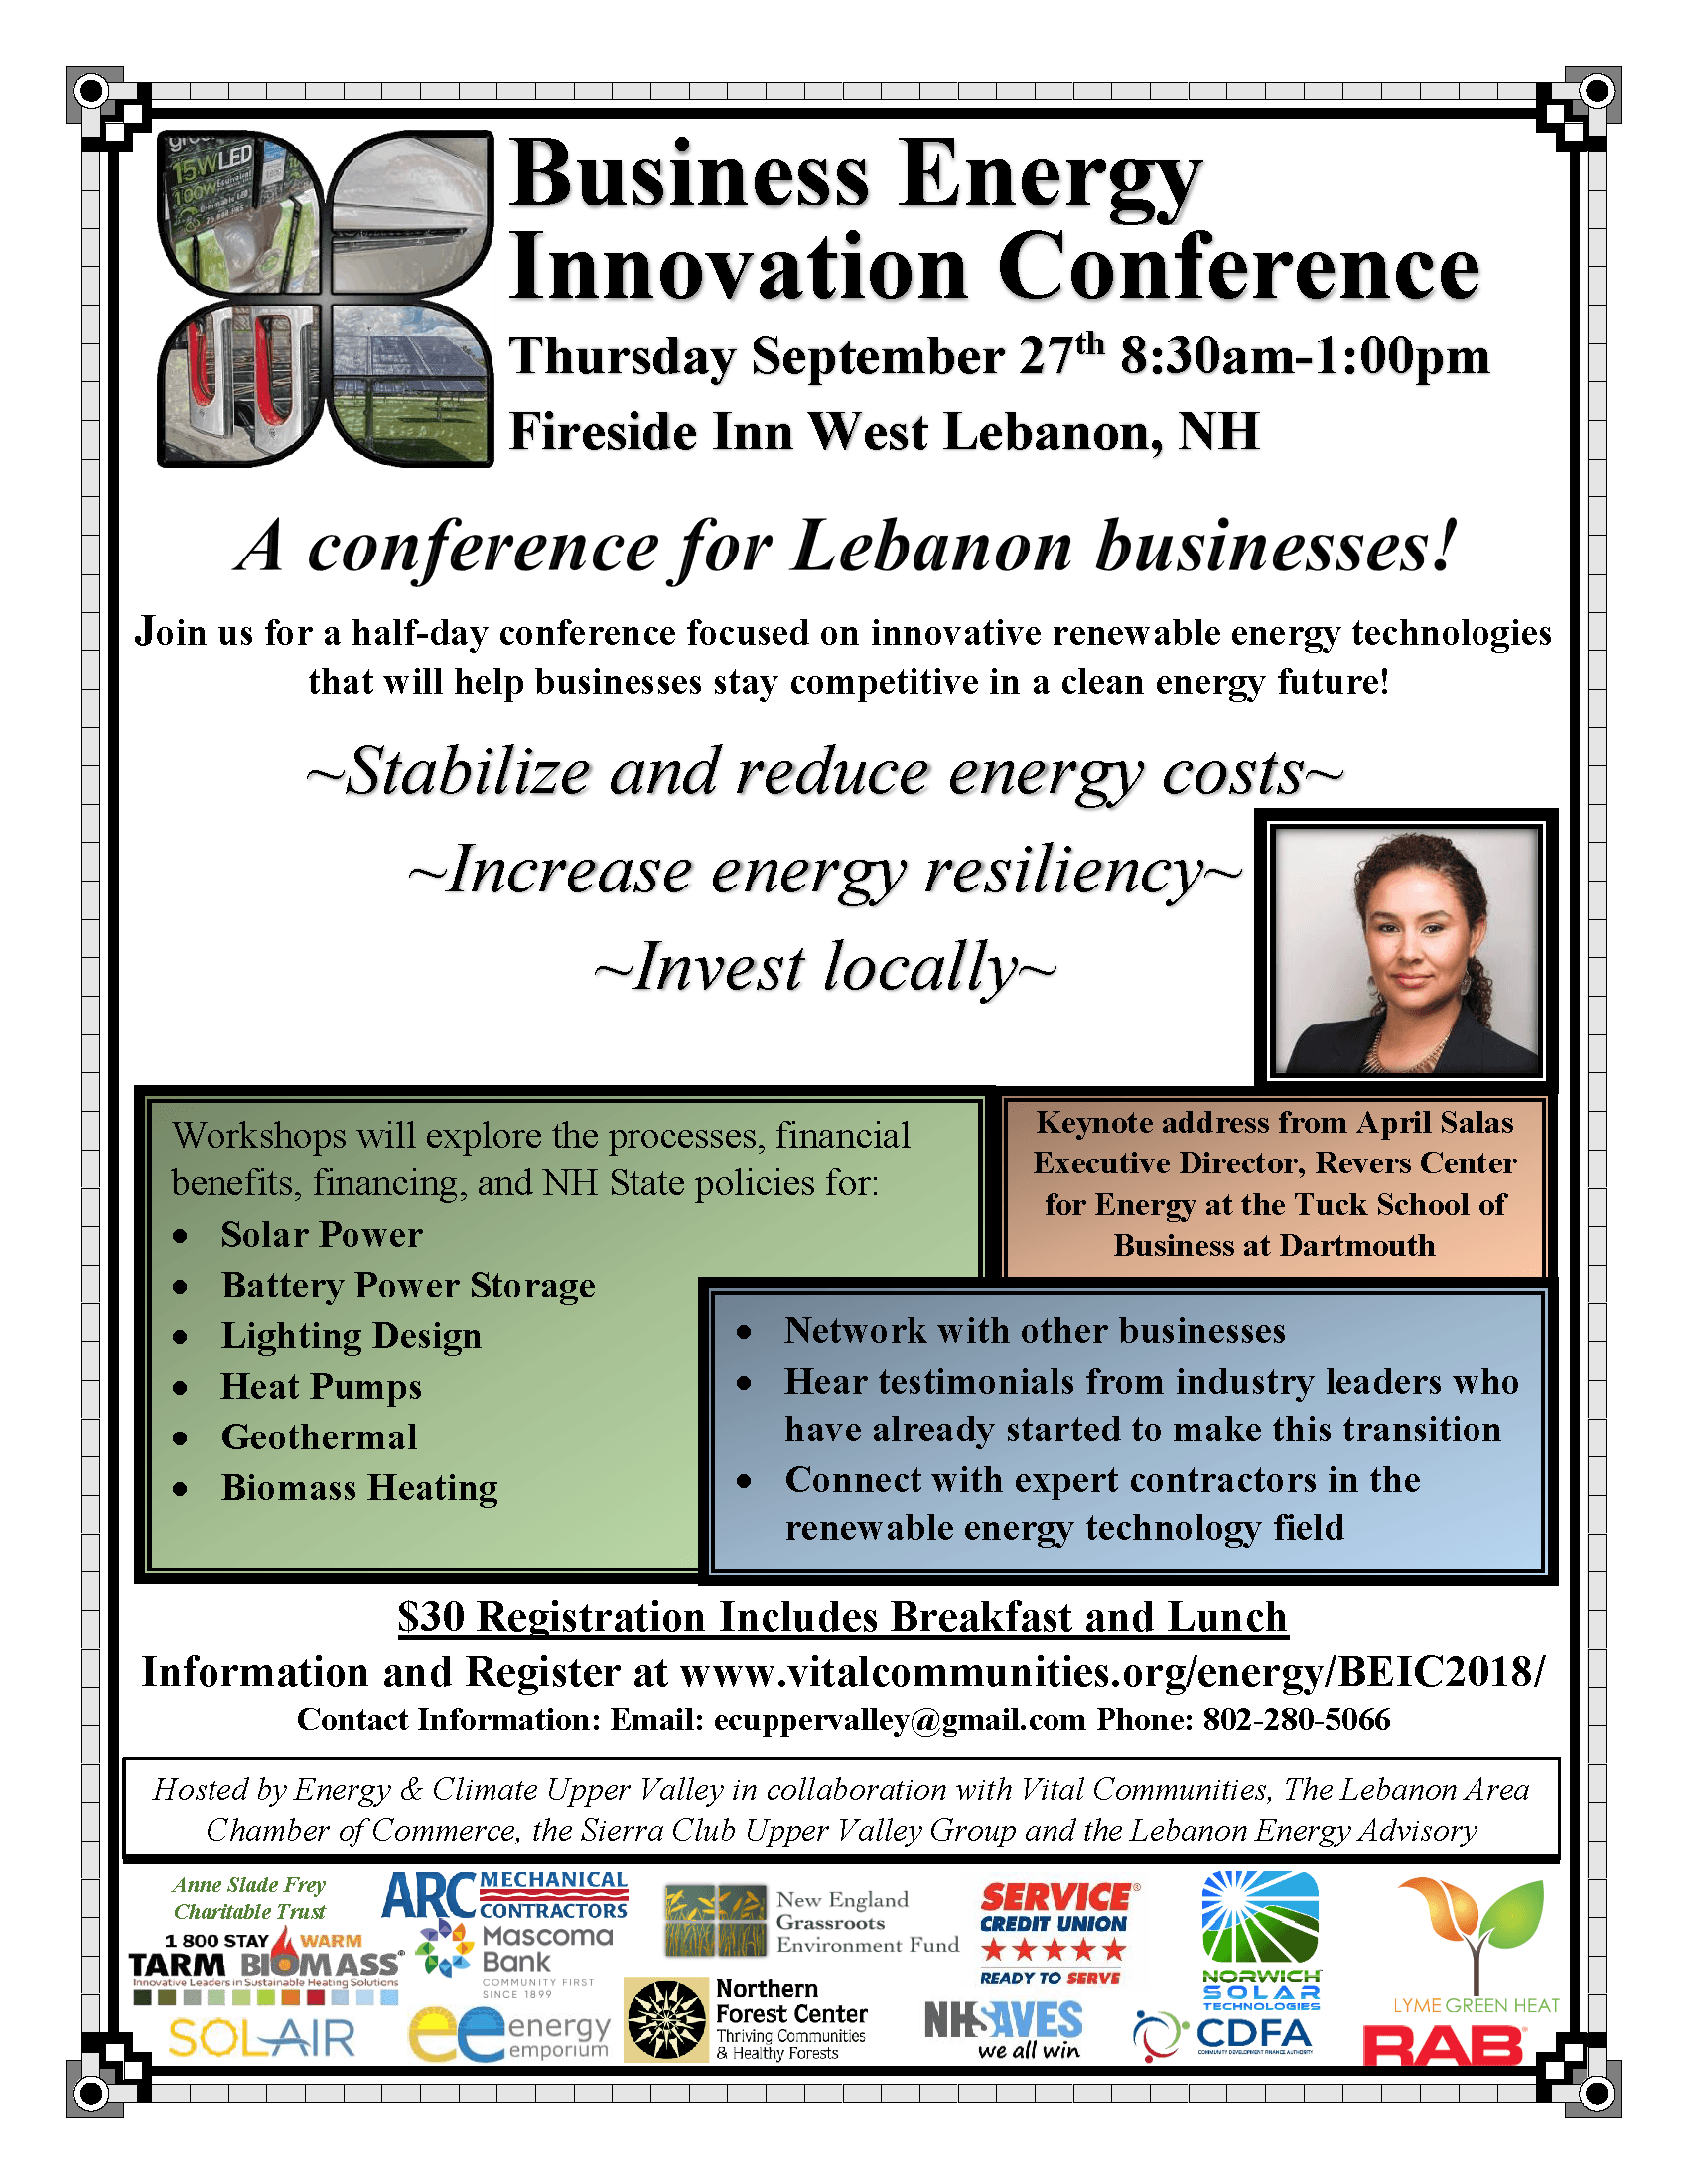 Business Energy Innovation Conference flyer